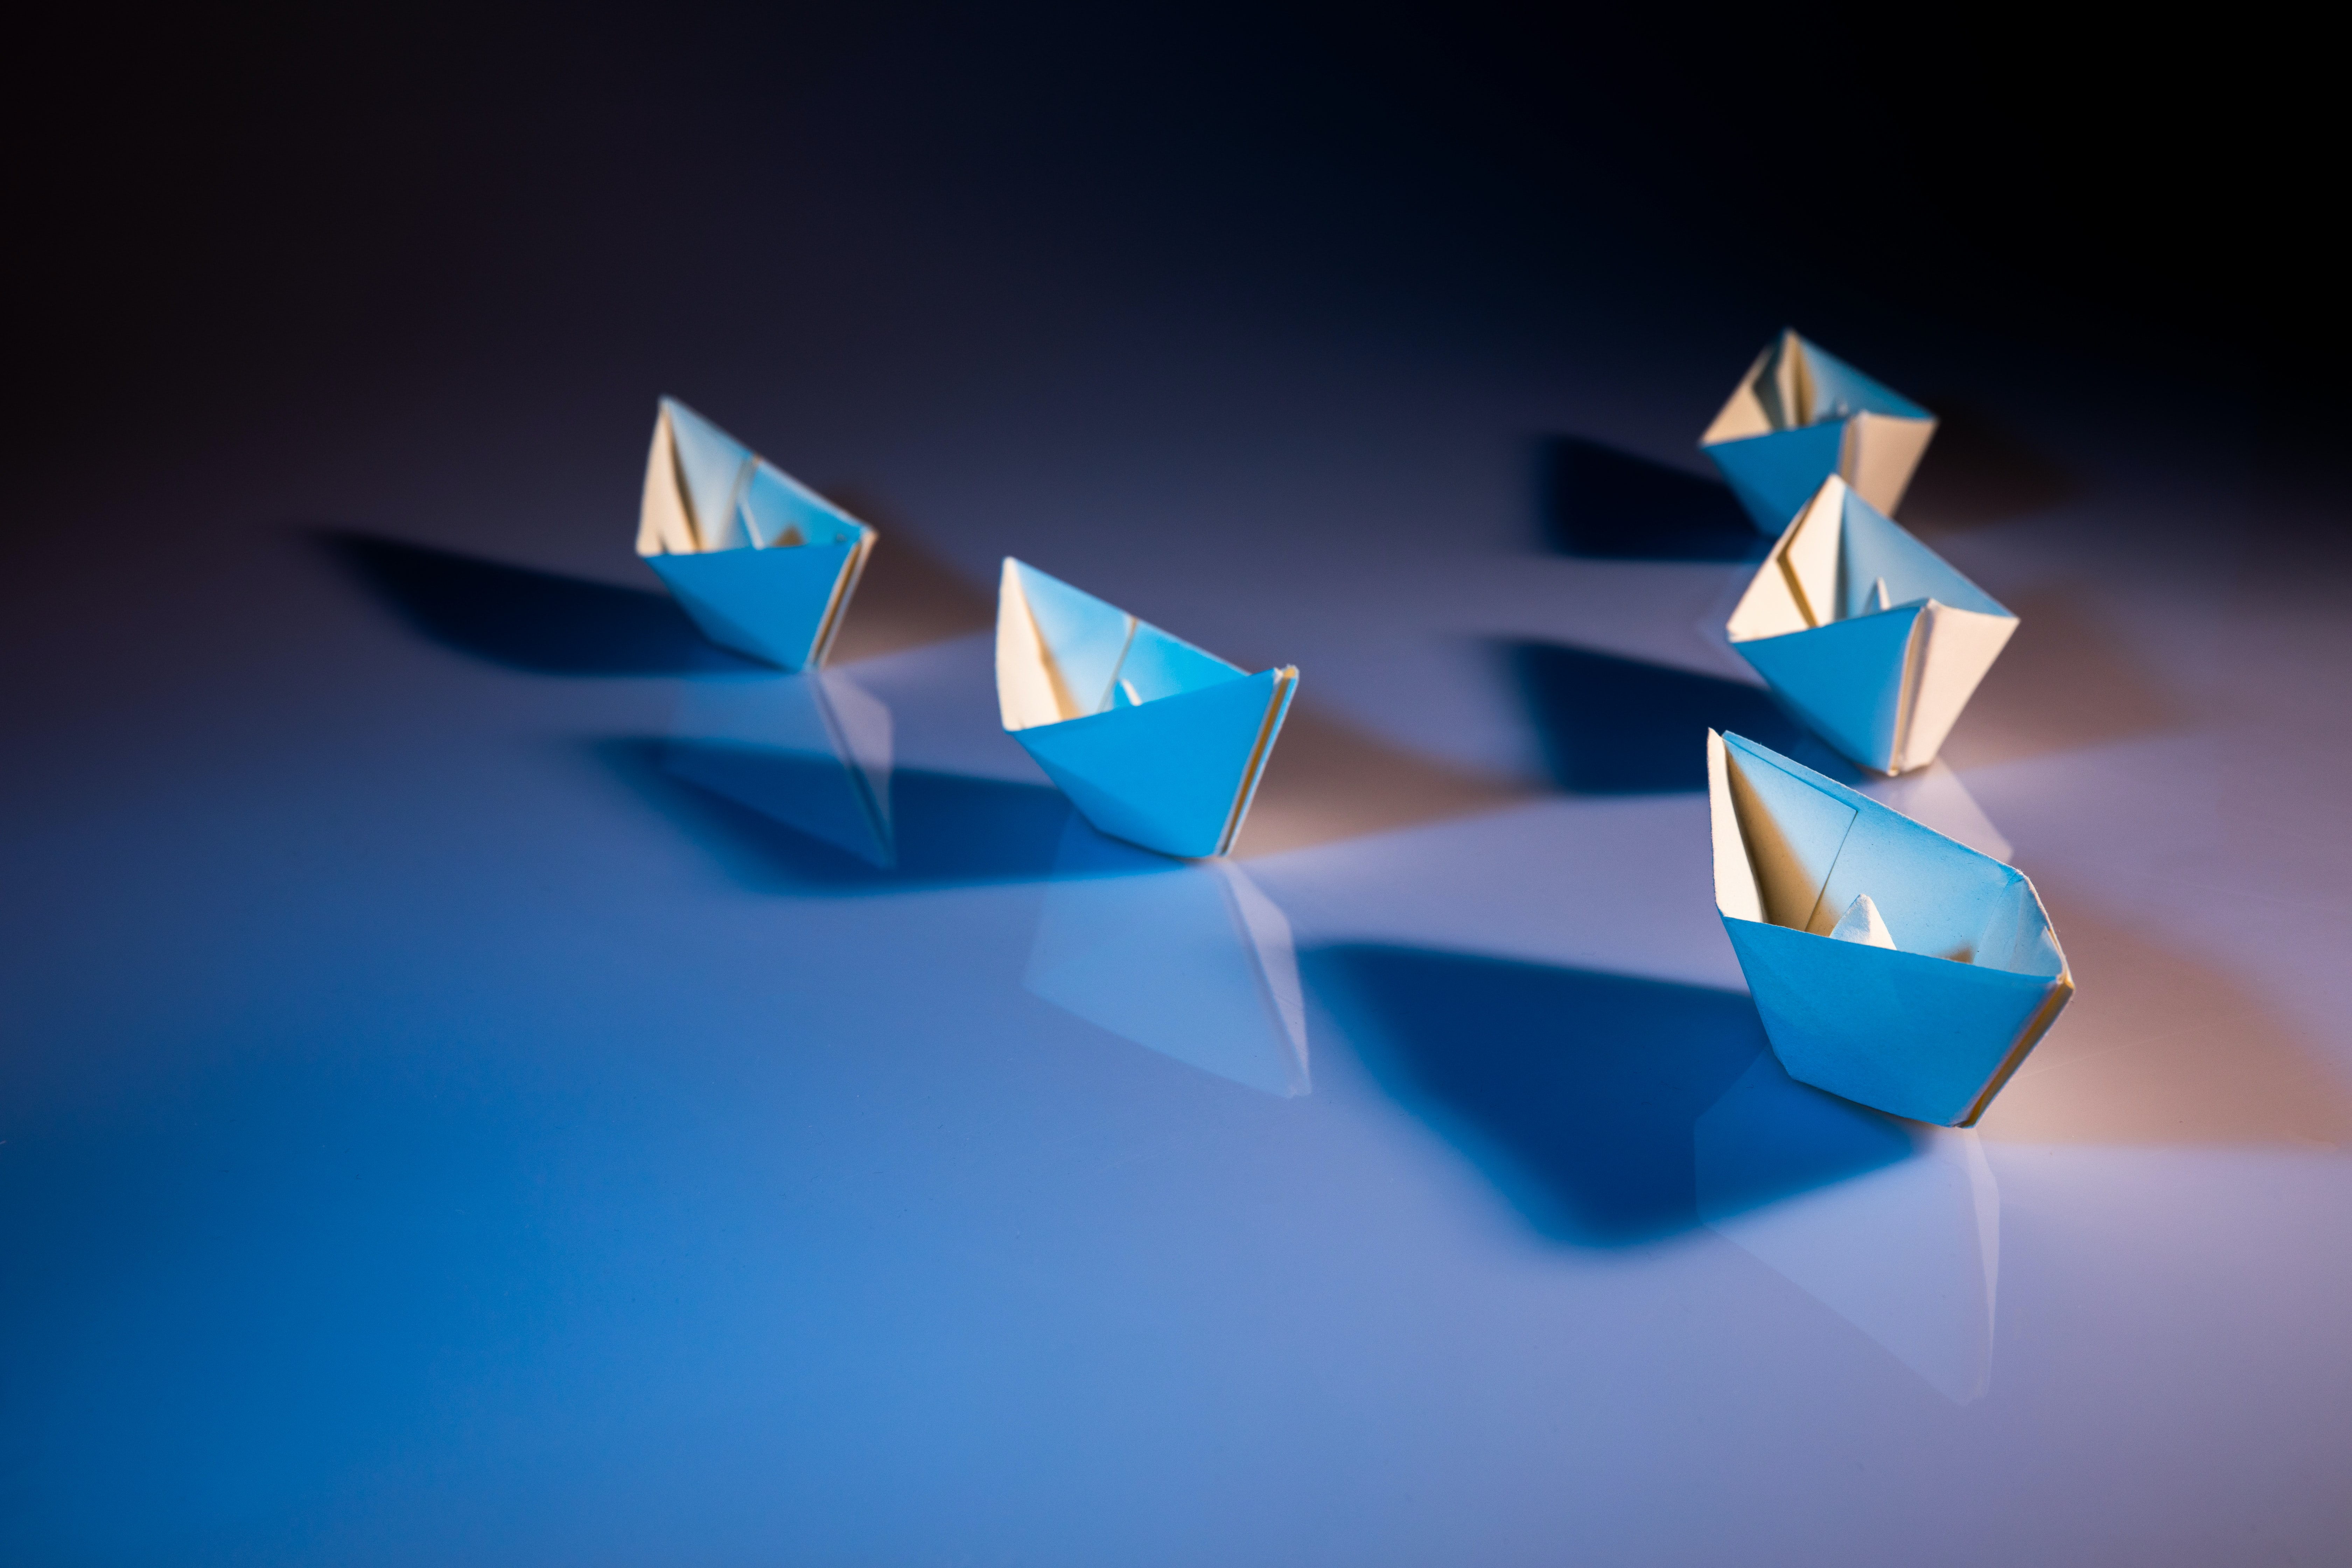 Paper boats on water